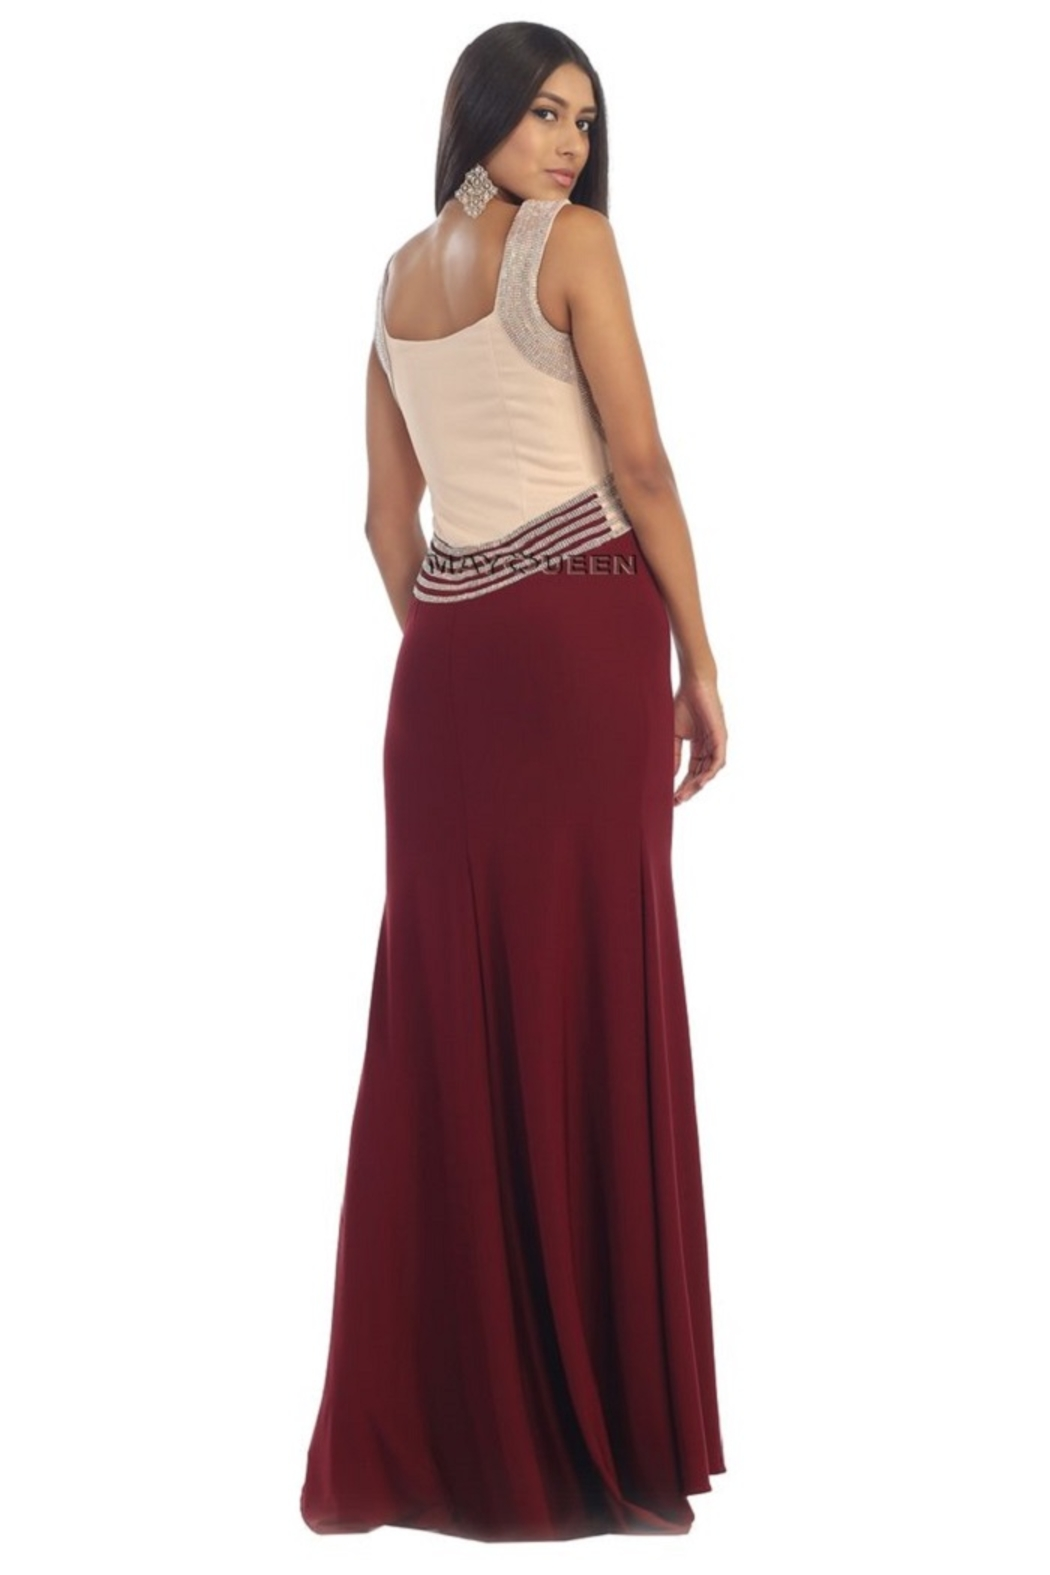 May Queen  Burgundy Beaded Sheath Formal Long Dress - Front Full Image